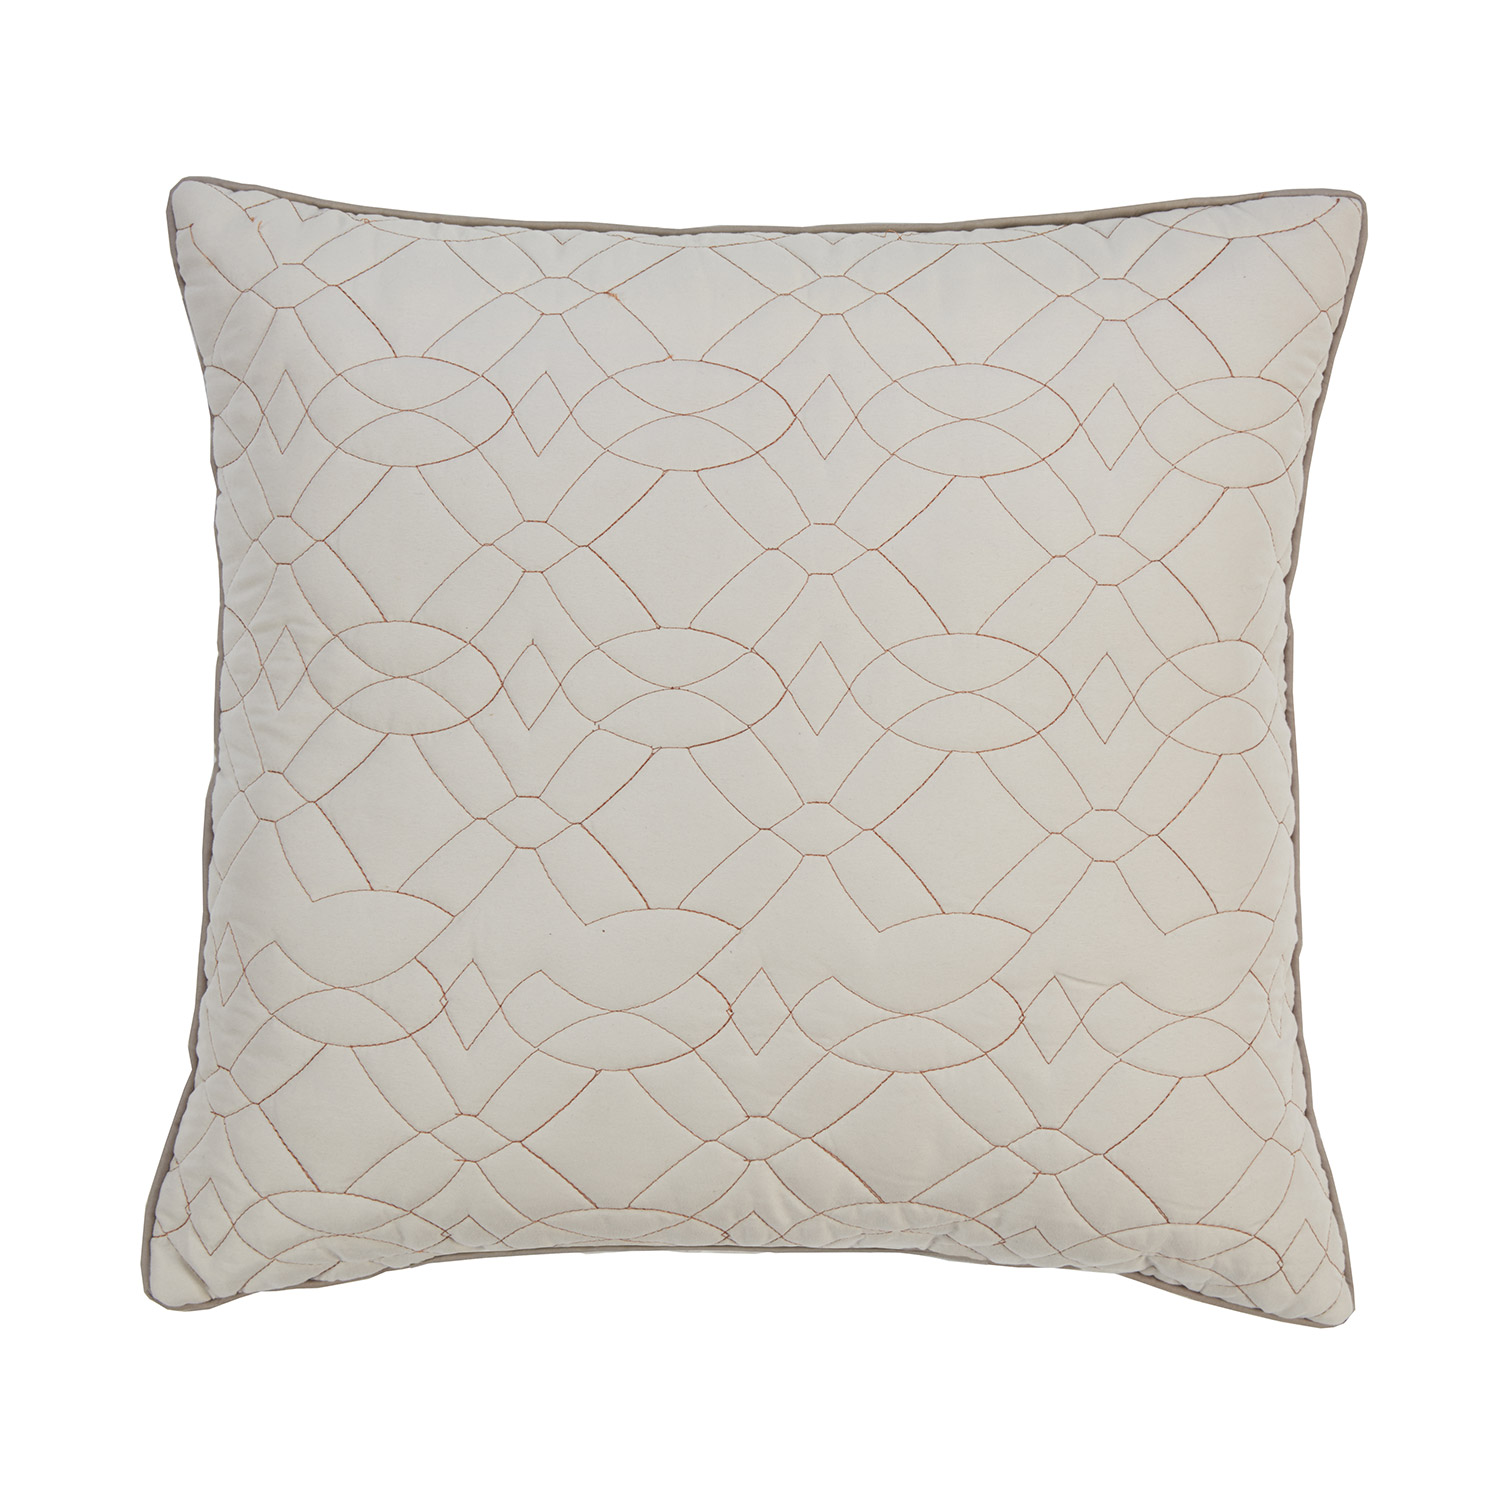 Stockists of Alex Luxury Quilted Filled Square Cushion